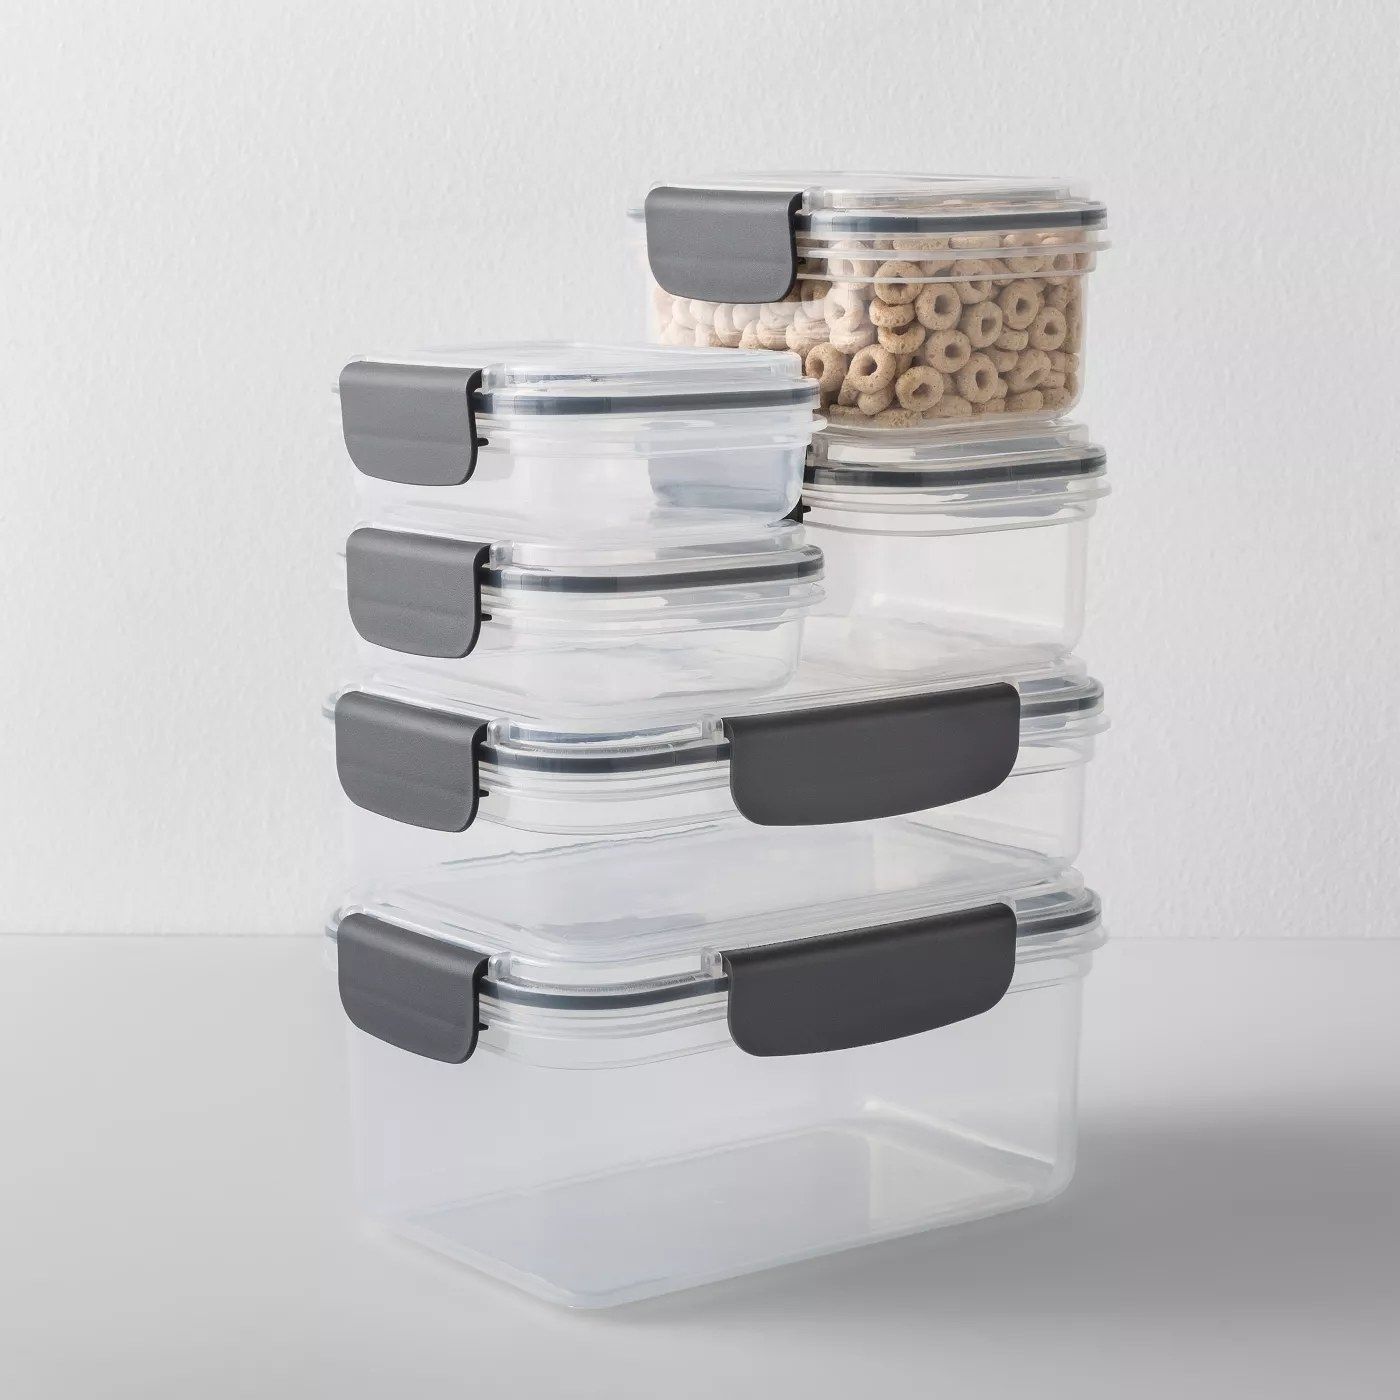 The storage containers stacked on top of each other, including one filled with cereal